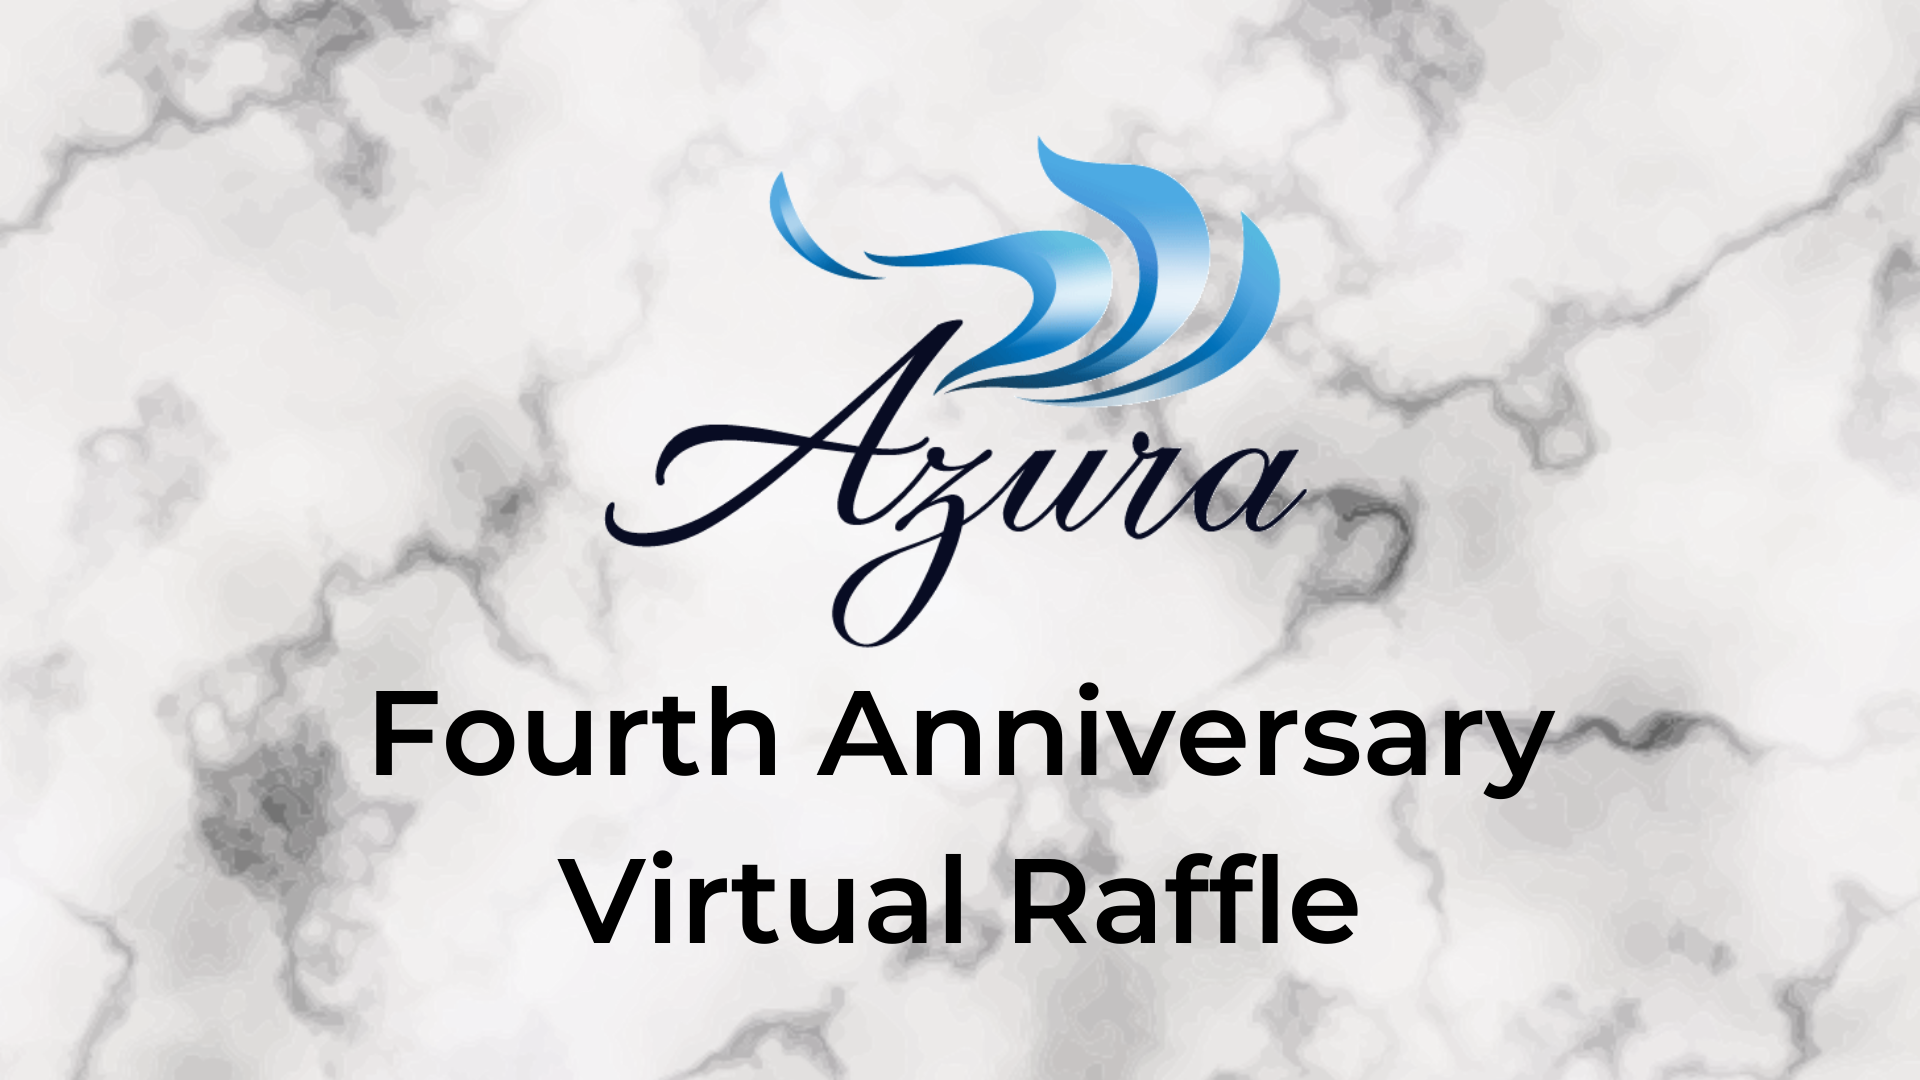 Azura Fourth Anniversary Celebration Raffles